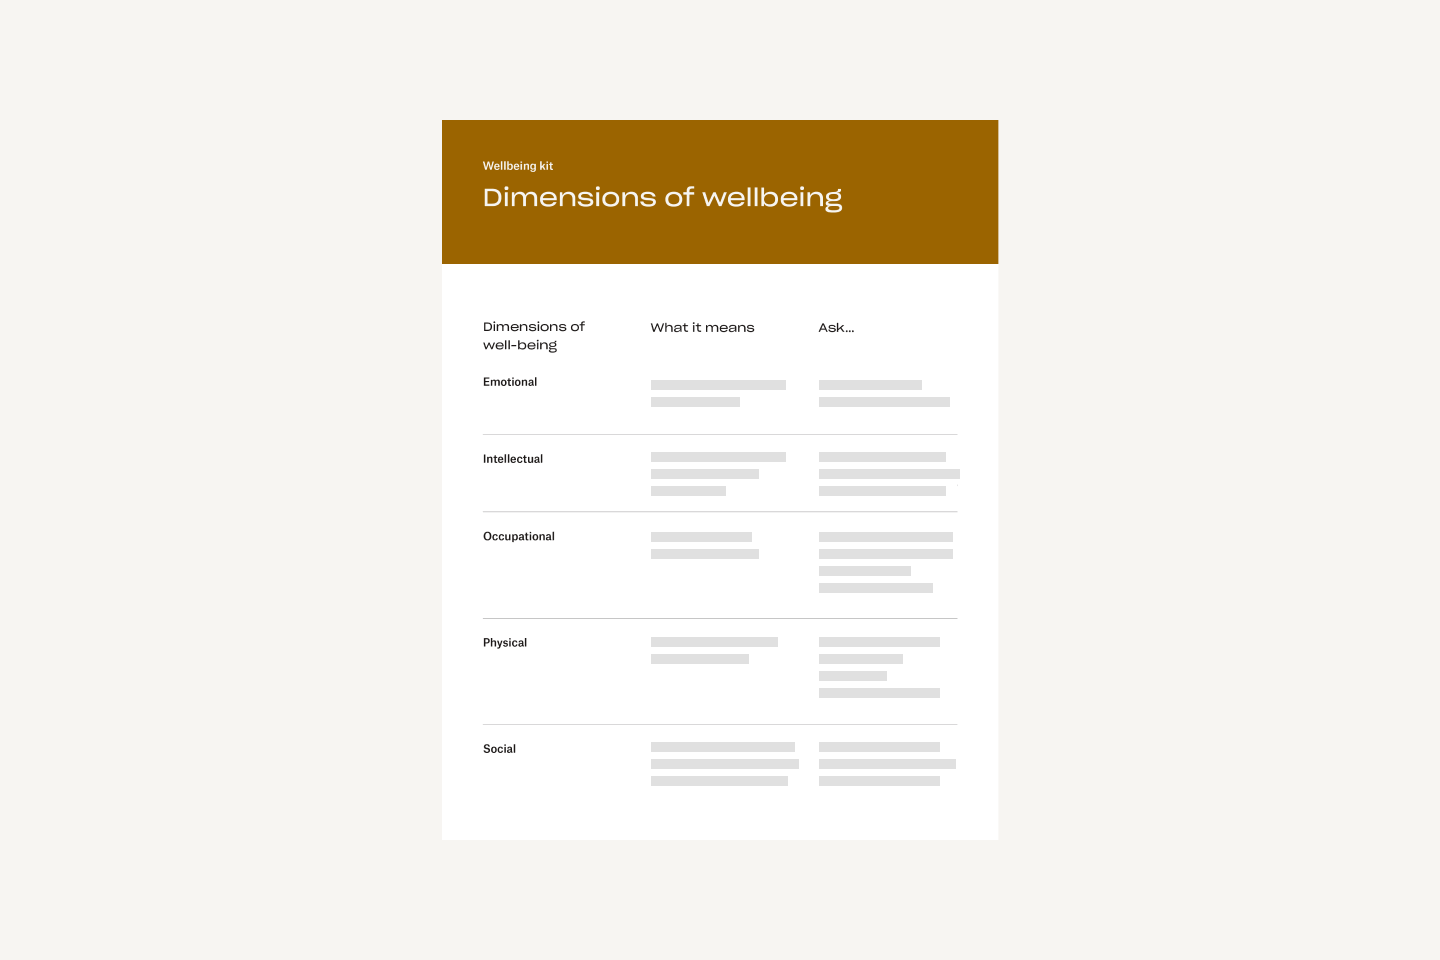 Dimensions of wellbeing